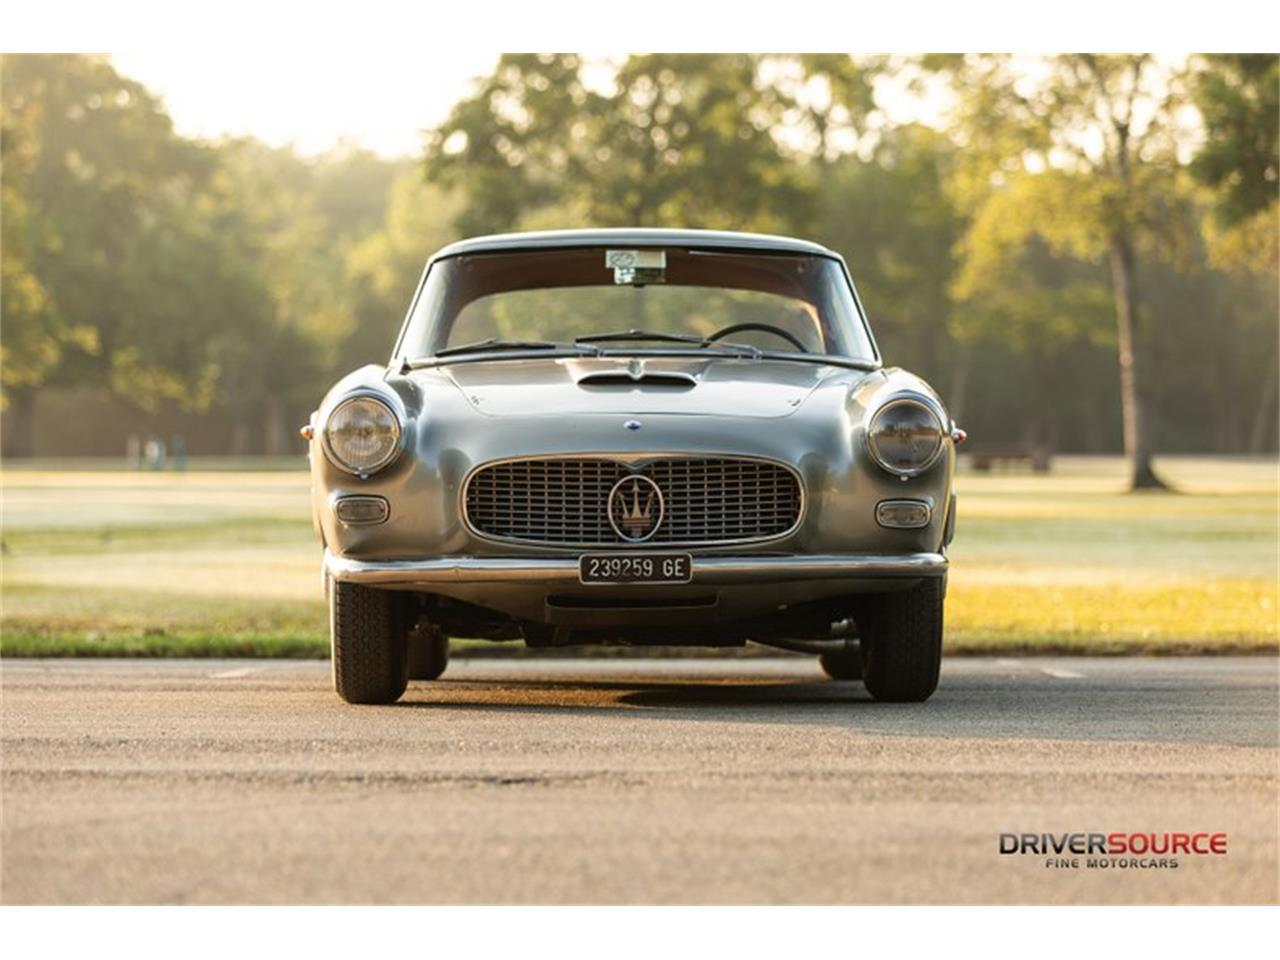 Large Picture of '62 Maserati 3500 - $278,500.00 Offered by Driversource - OCR7